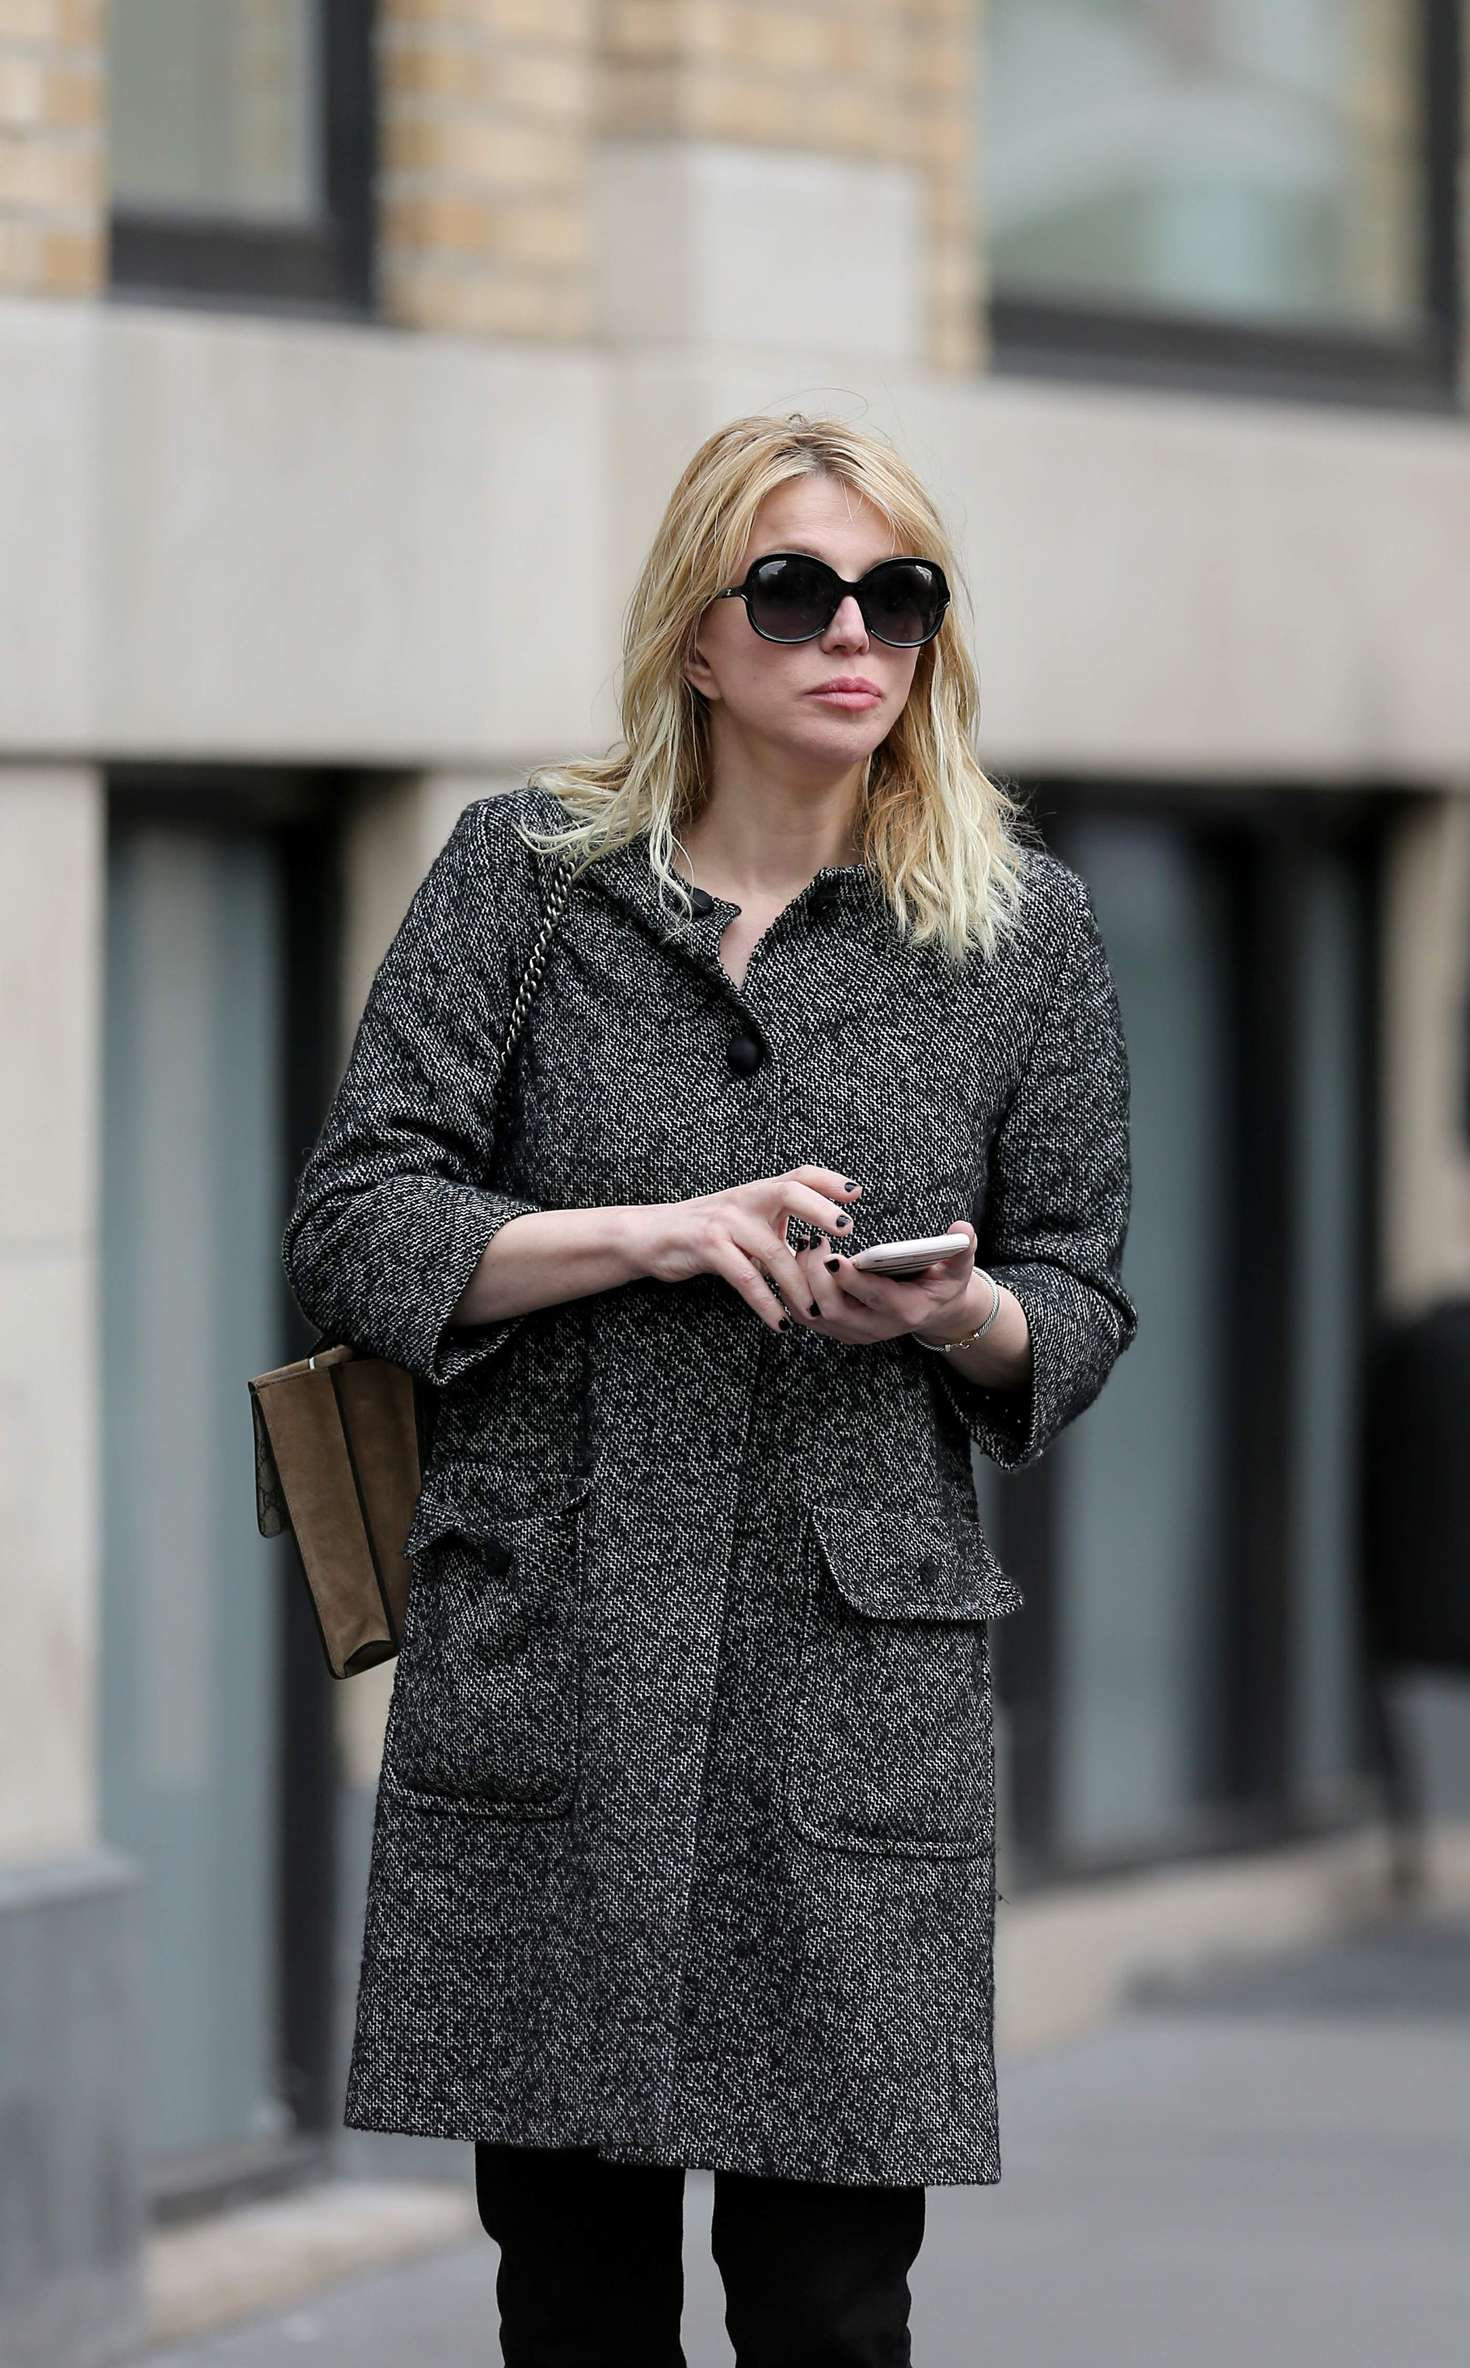 Courtney Love out in New York